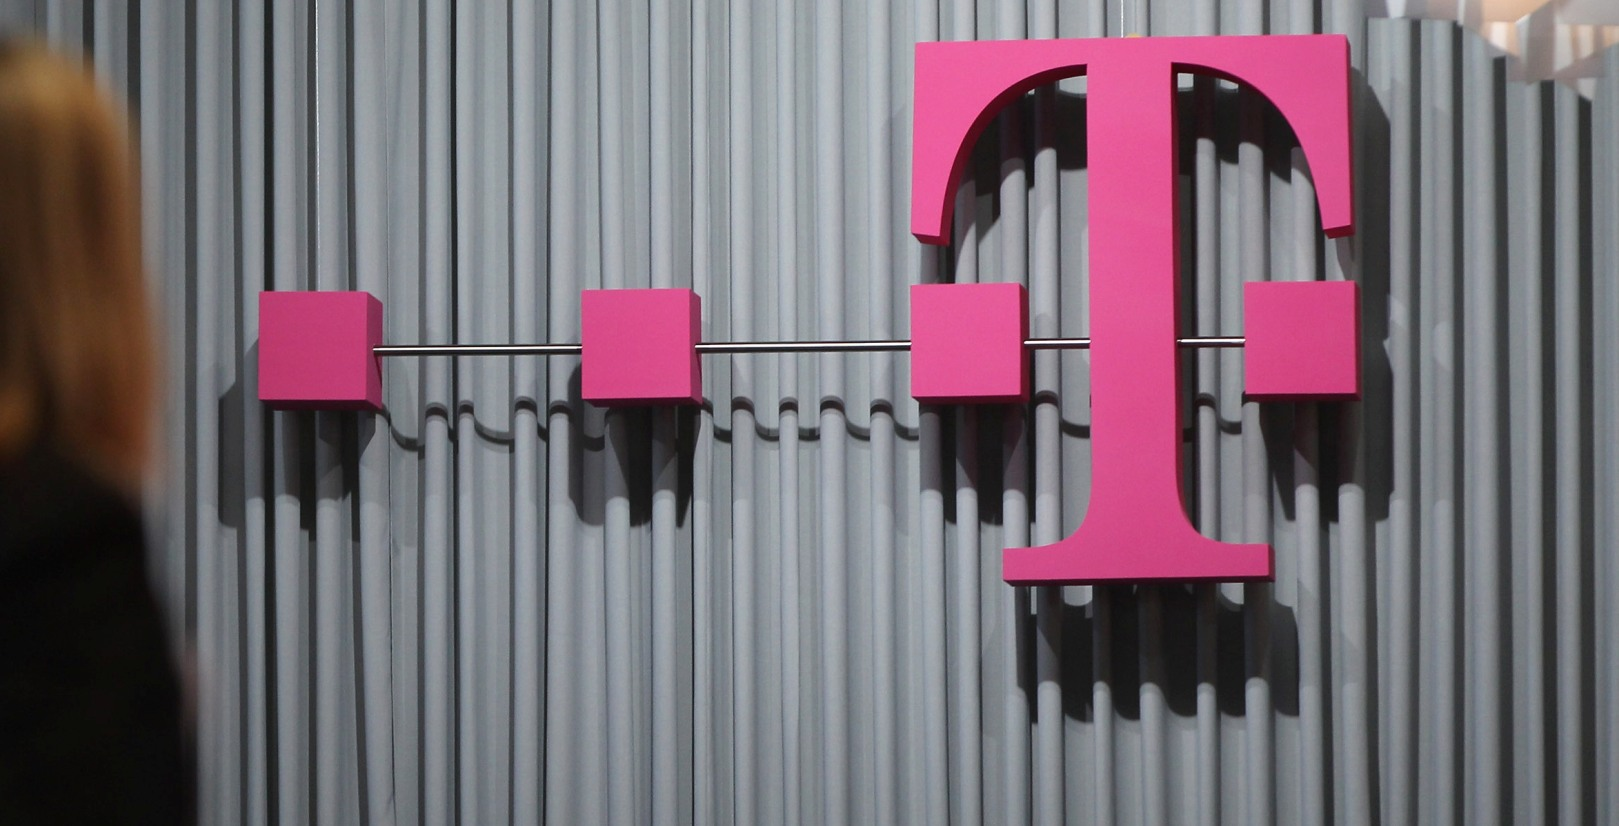 Deutsche Telekom's Spotify bundles launch in Germany on October 2, starting at €29.95 per month ...